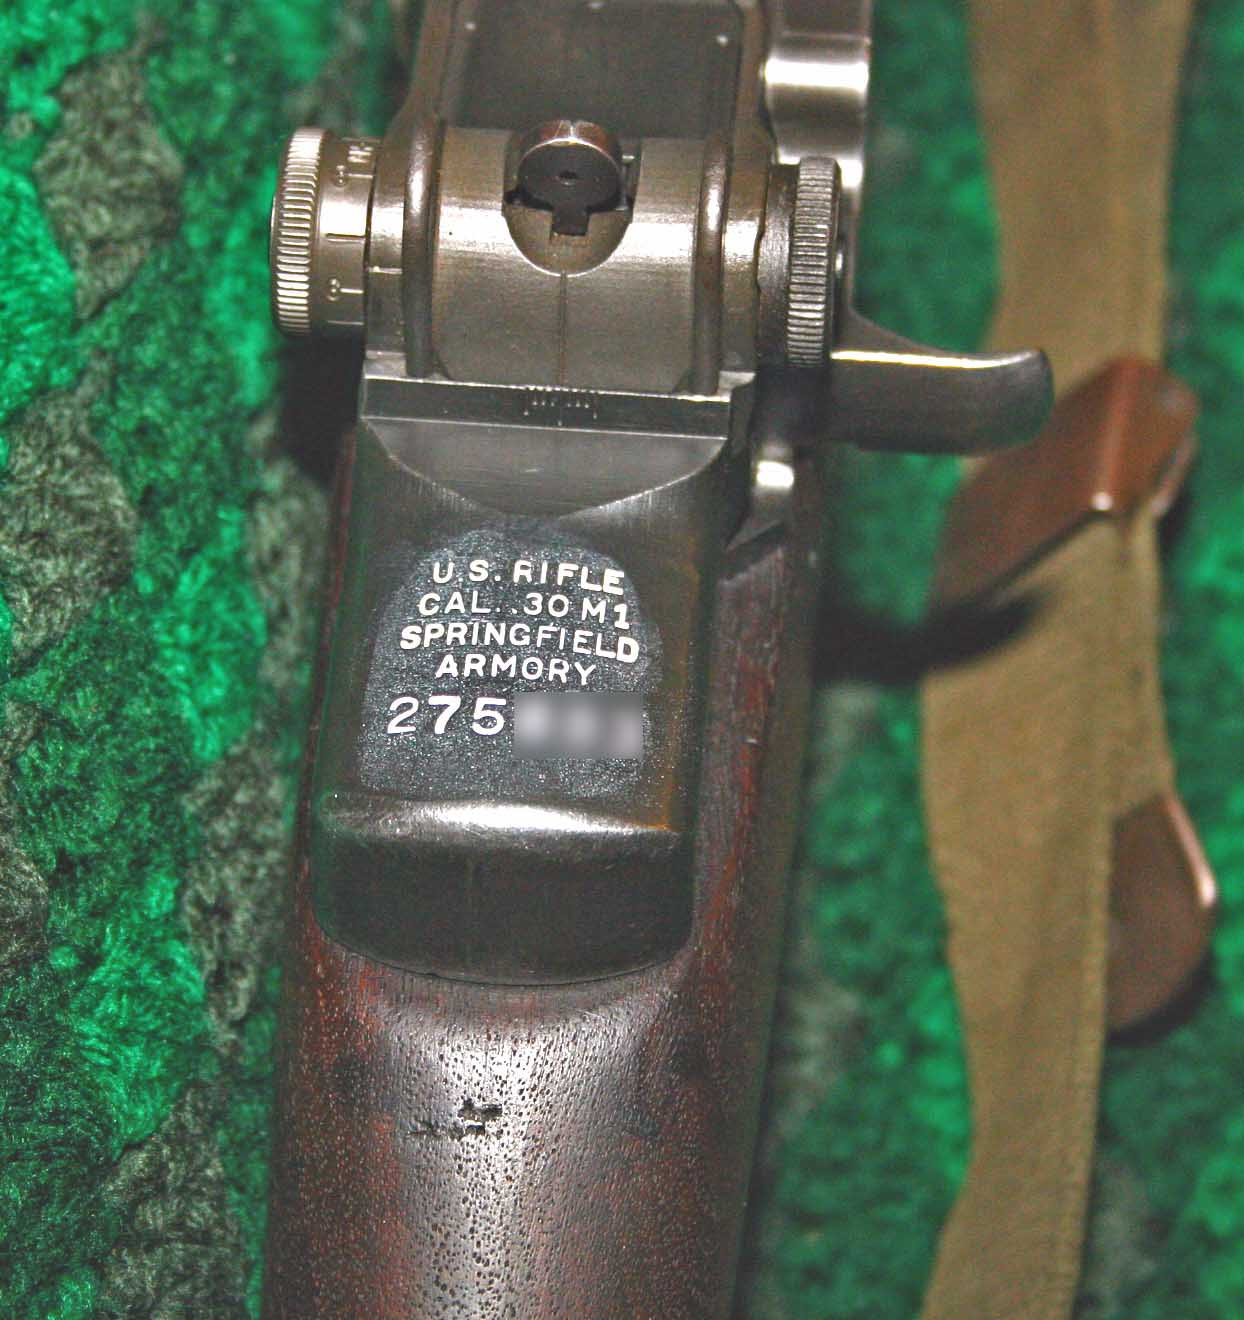 m1 garand dating M1 garand serial numbers m1 garand sa born on dates from www ii m1 g arand s erial n umbers b y m onth a nd y ear s pringfield a rmory serial numbers below.